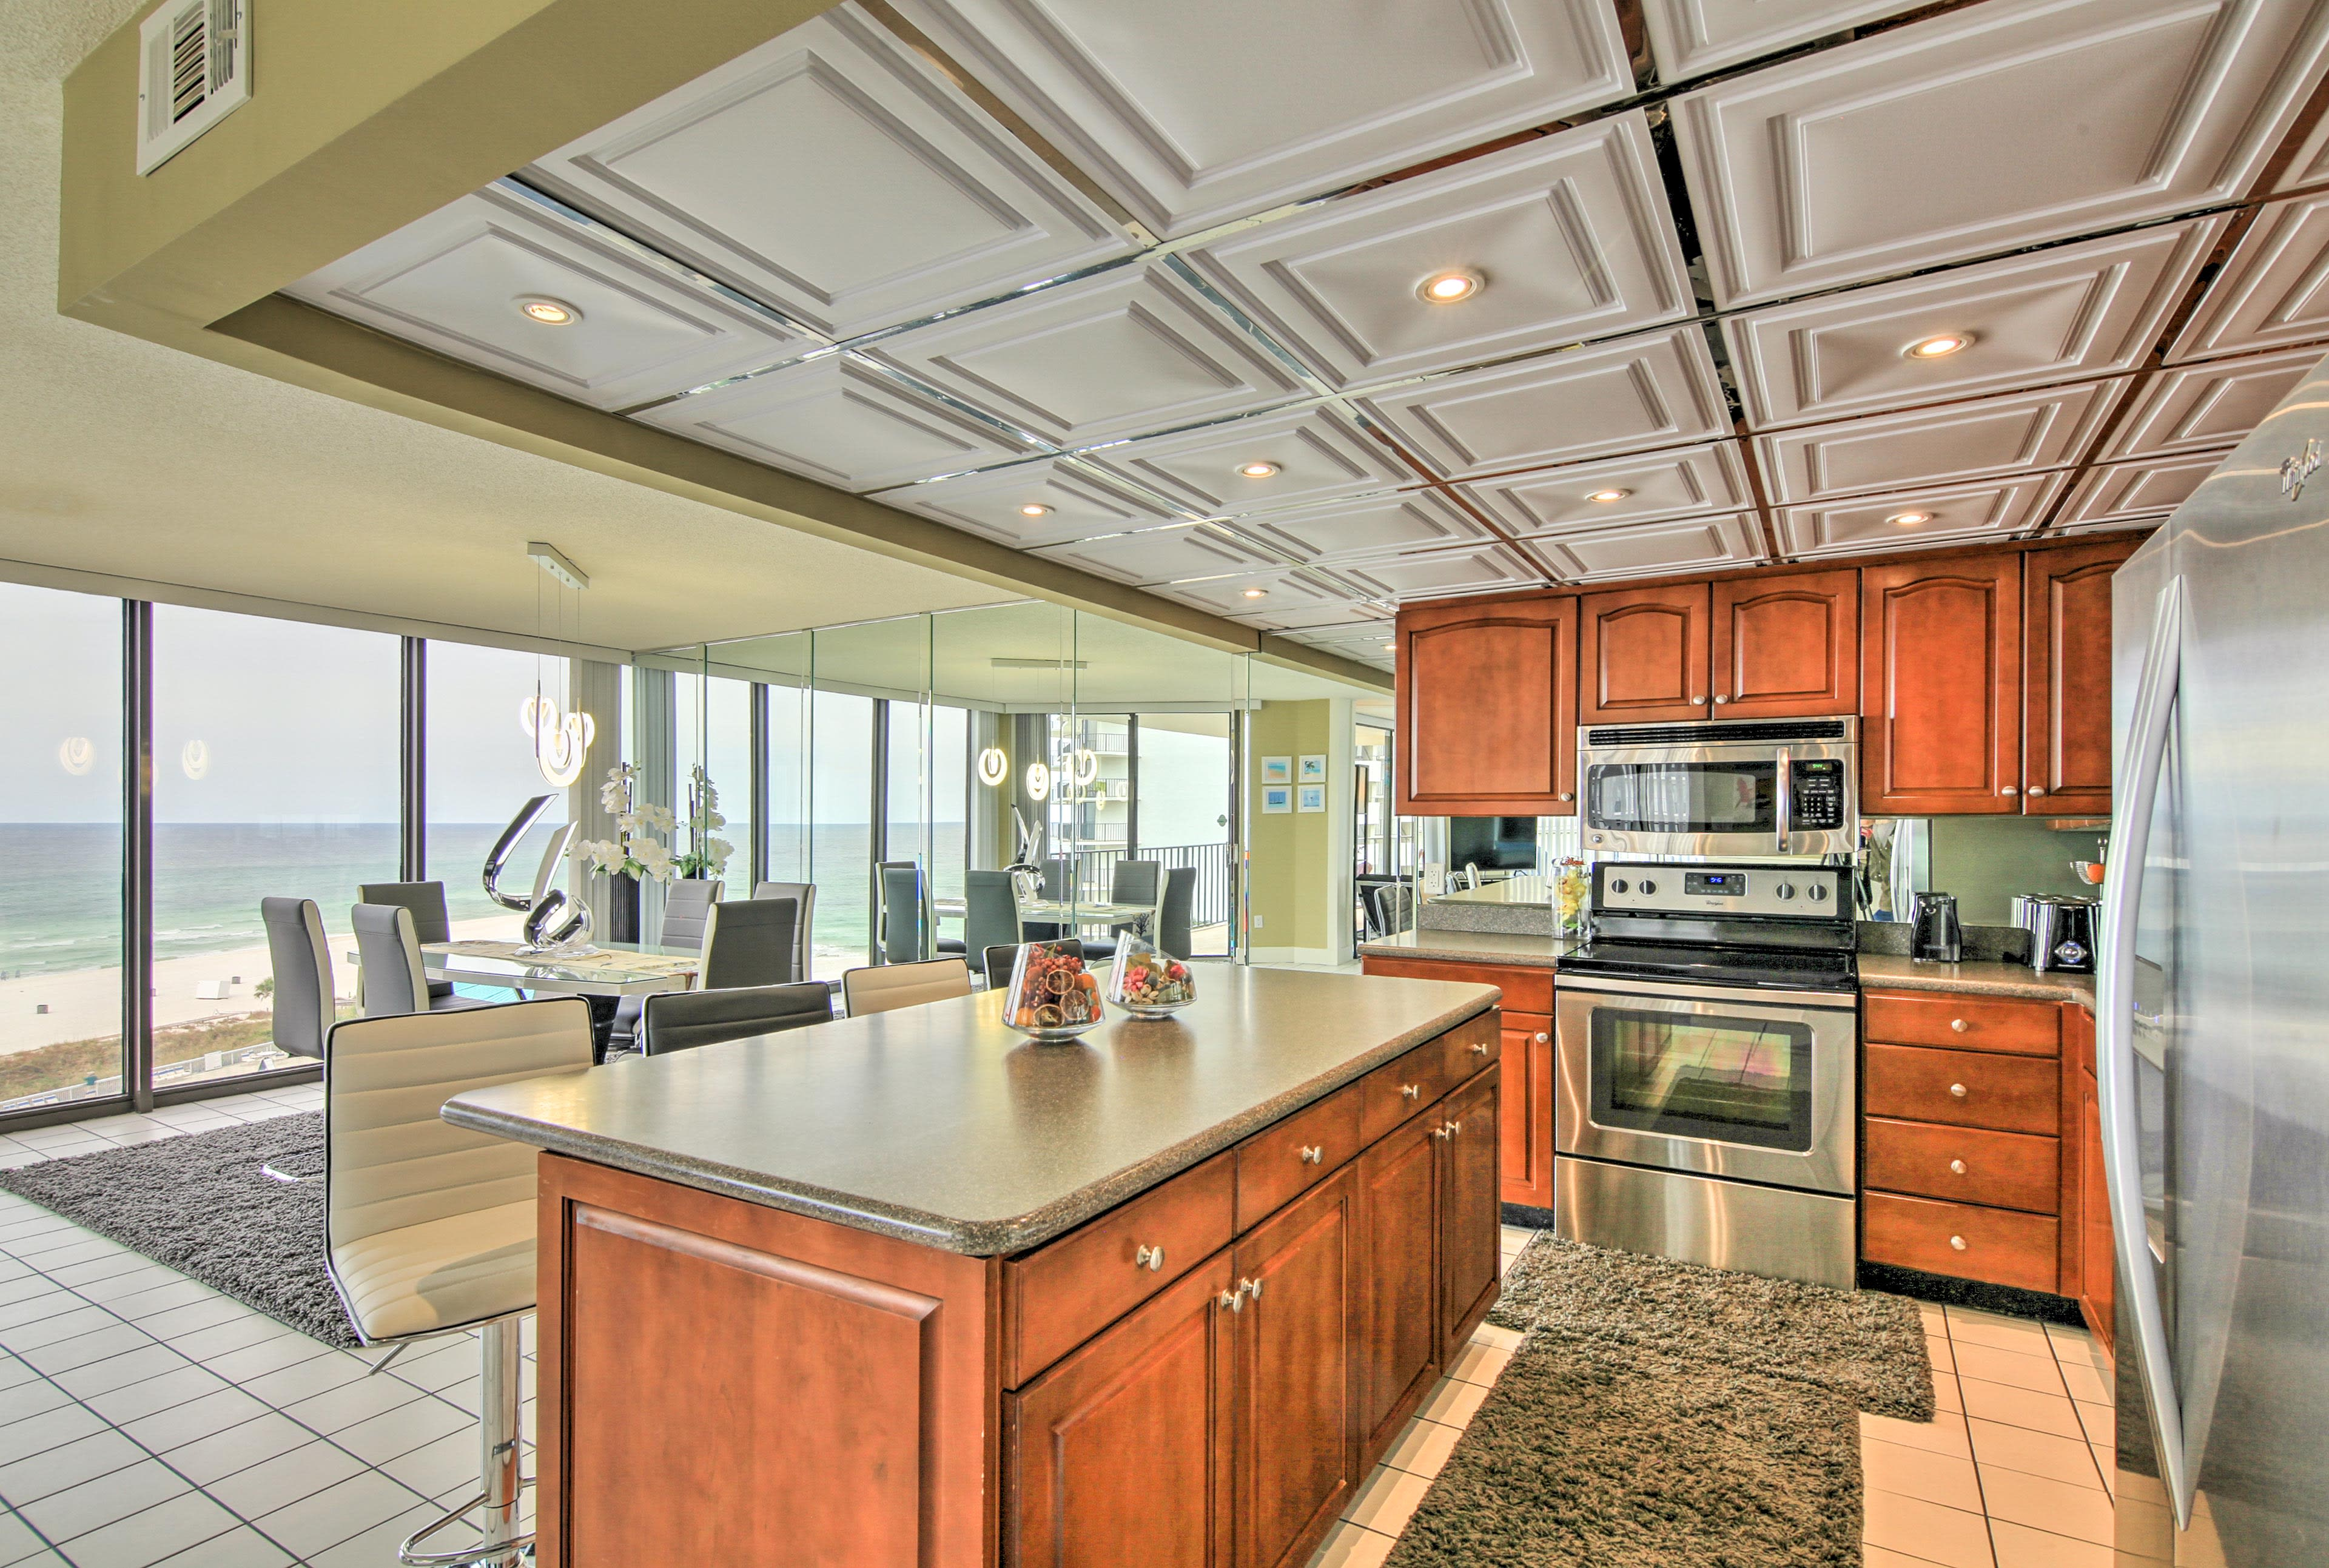 This vacation rental features high-end fixtures and furnishings throughout.